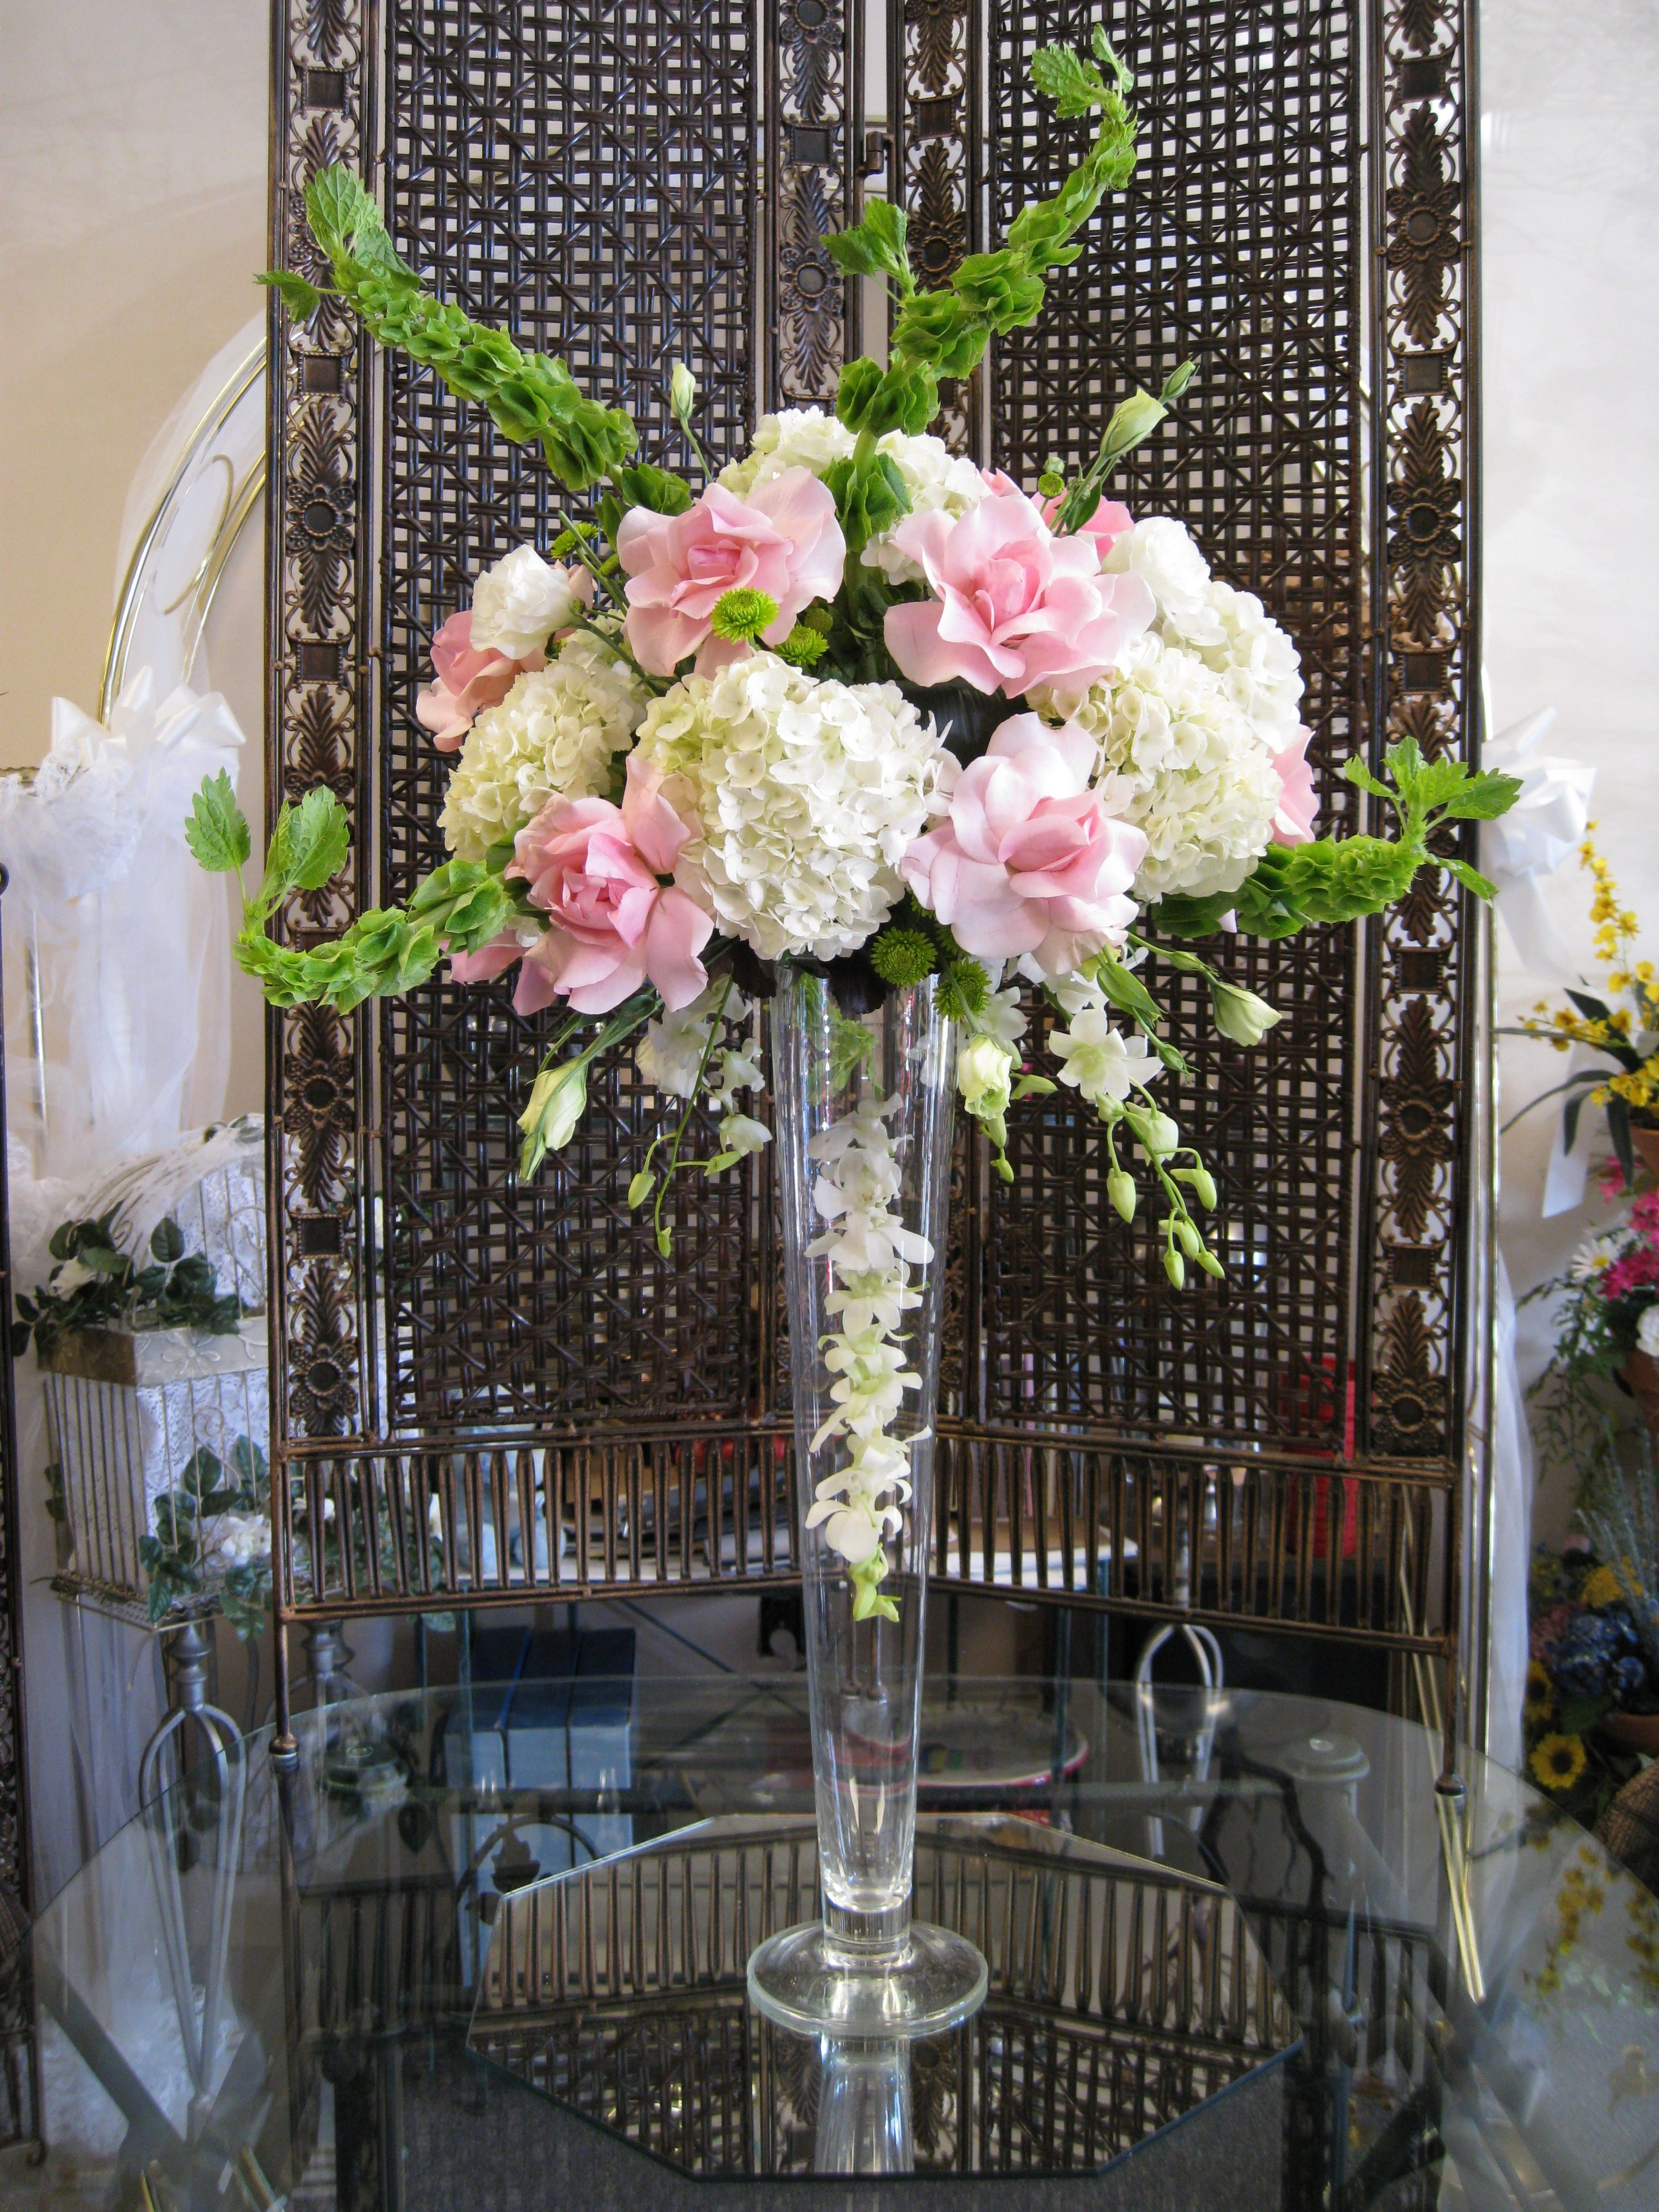 Pink White & Green Wedding Centerpiece with Roses, Hydrangea ...